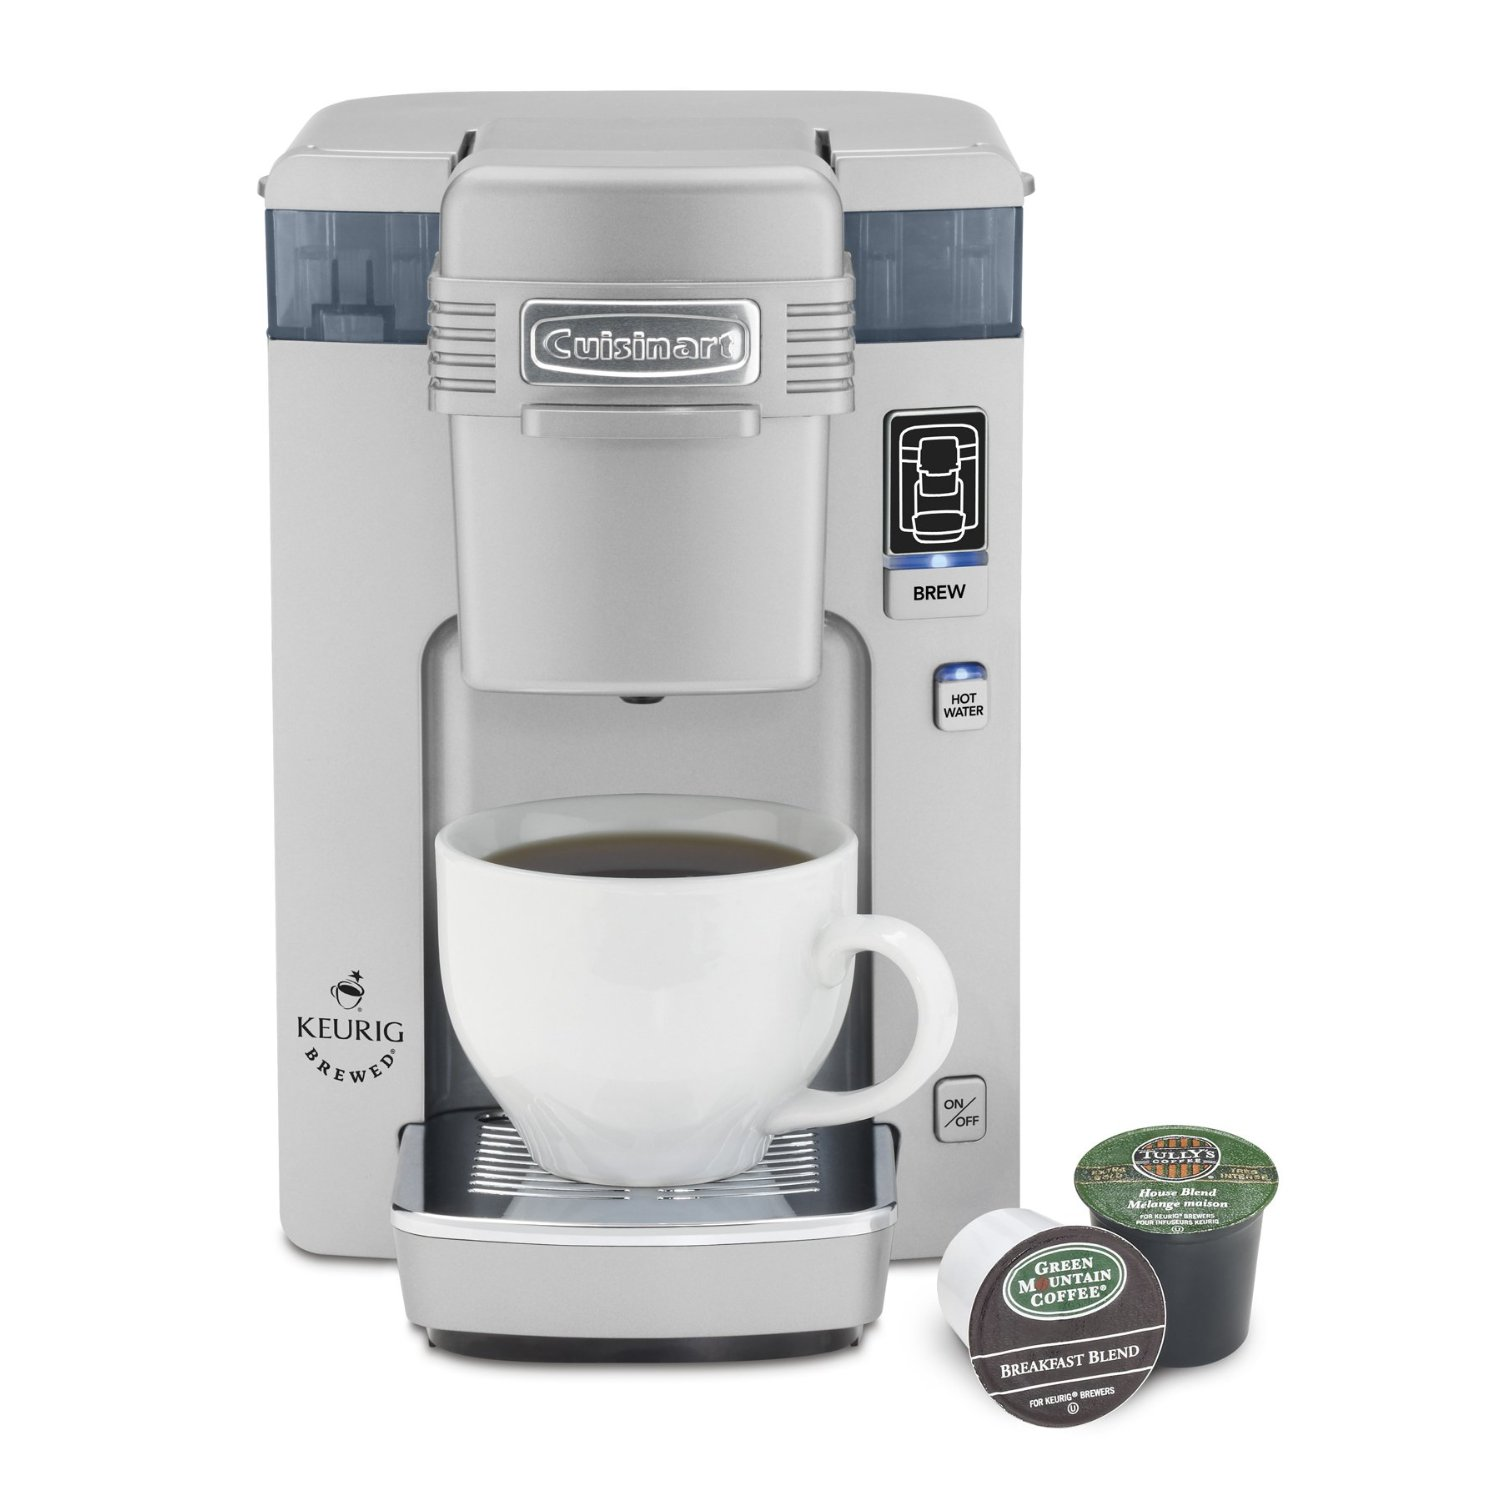 Cuisinart Ss 300 Compact Single Serve Coffee Maker Use With K Cups